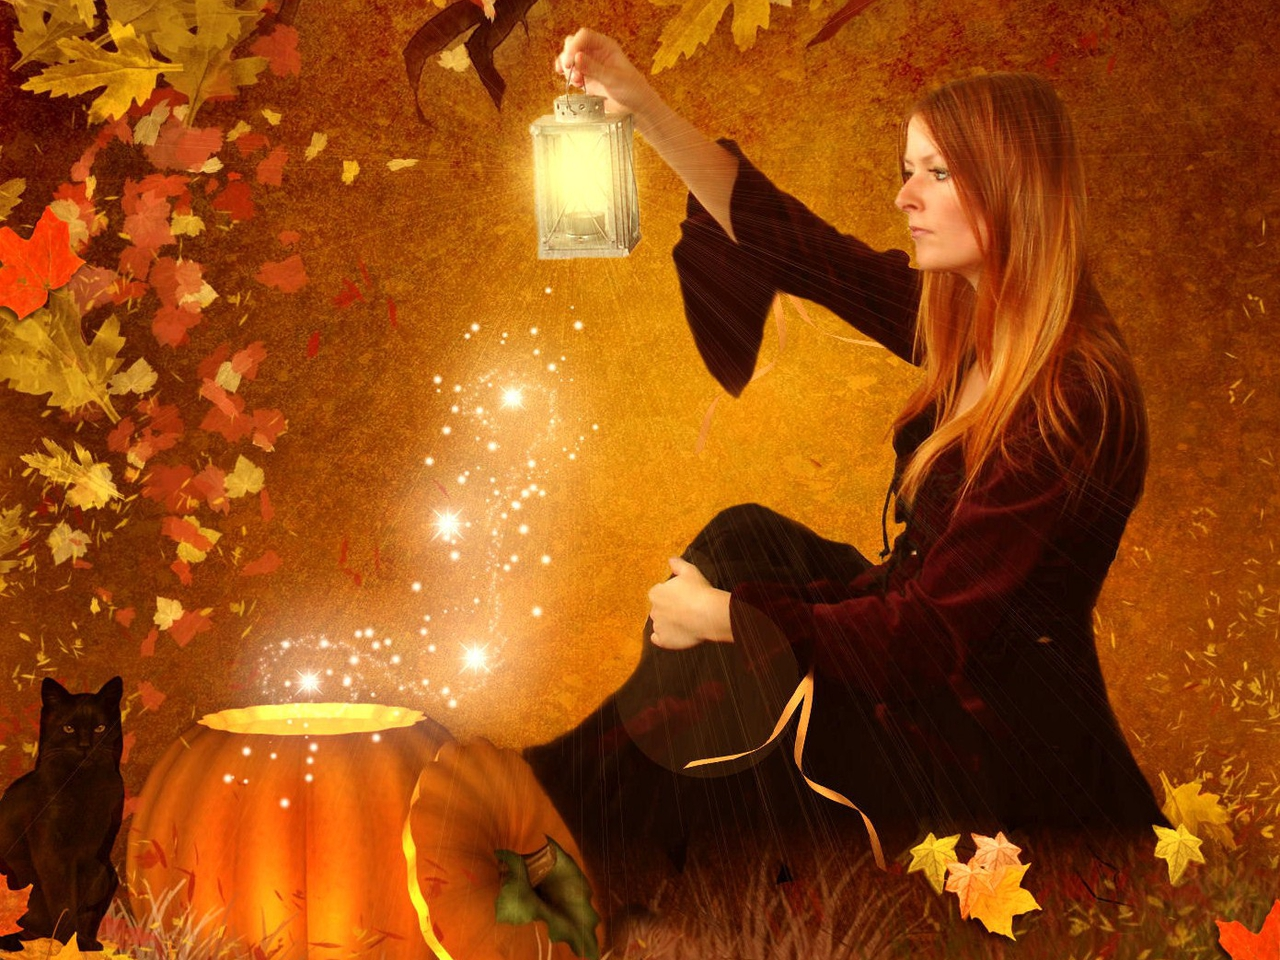 autumn images autumn harvest hd wallpaper and background photos